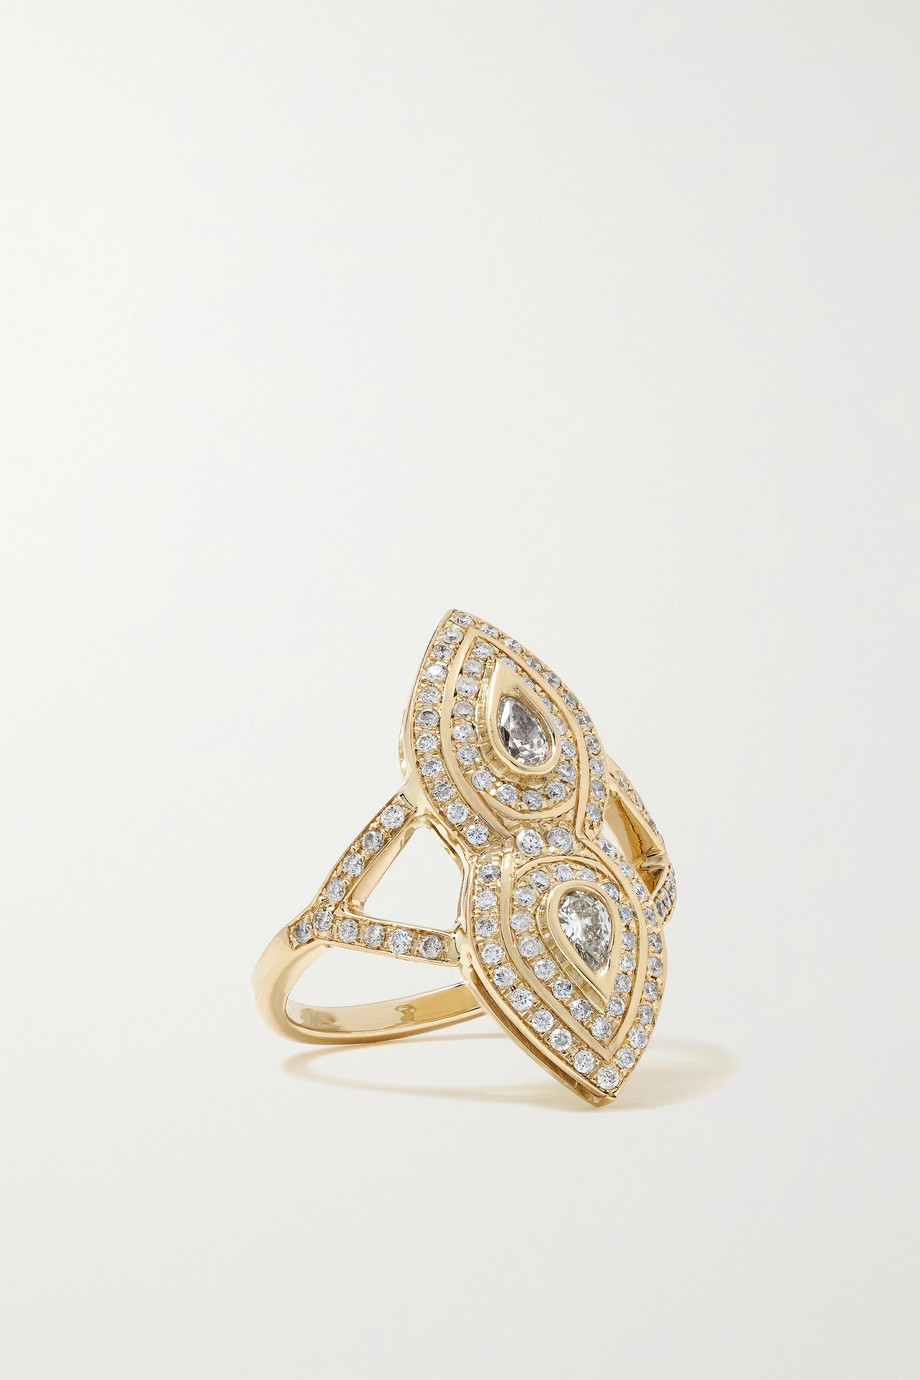 Jacquie Aiche Bague en or 14 carats et diamants